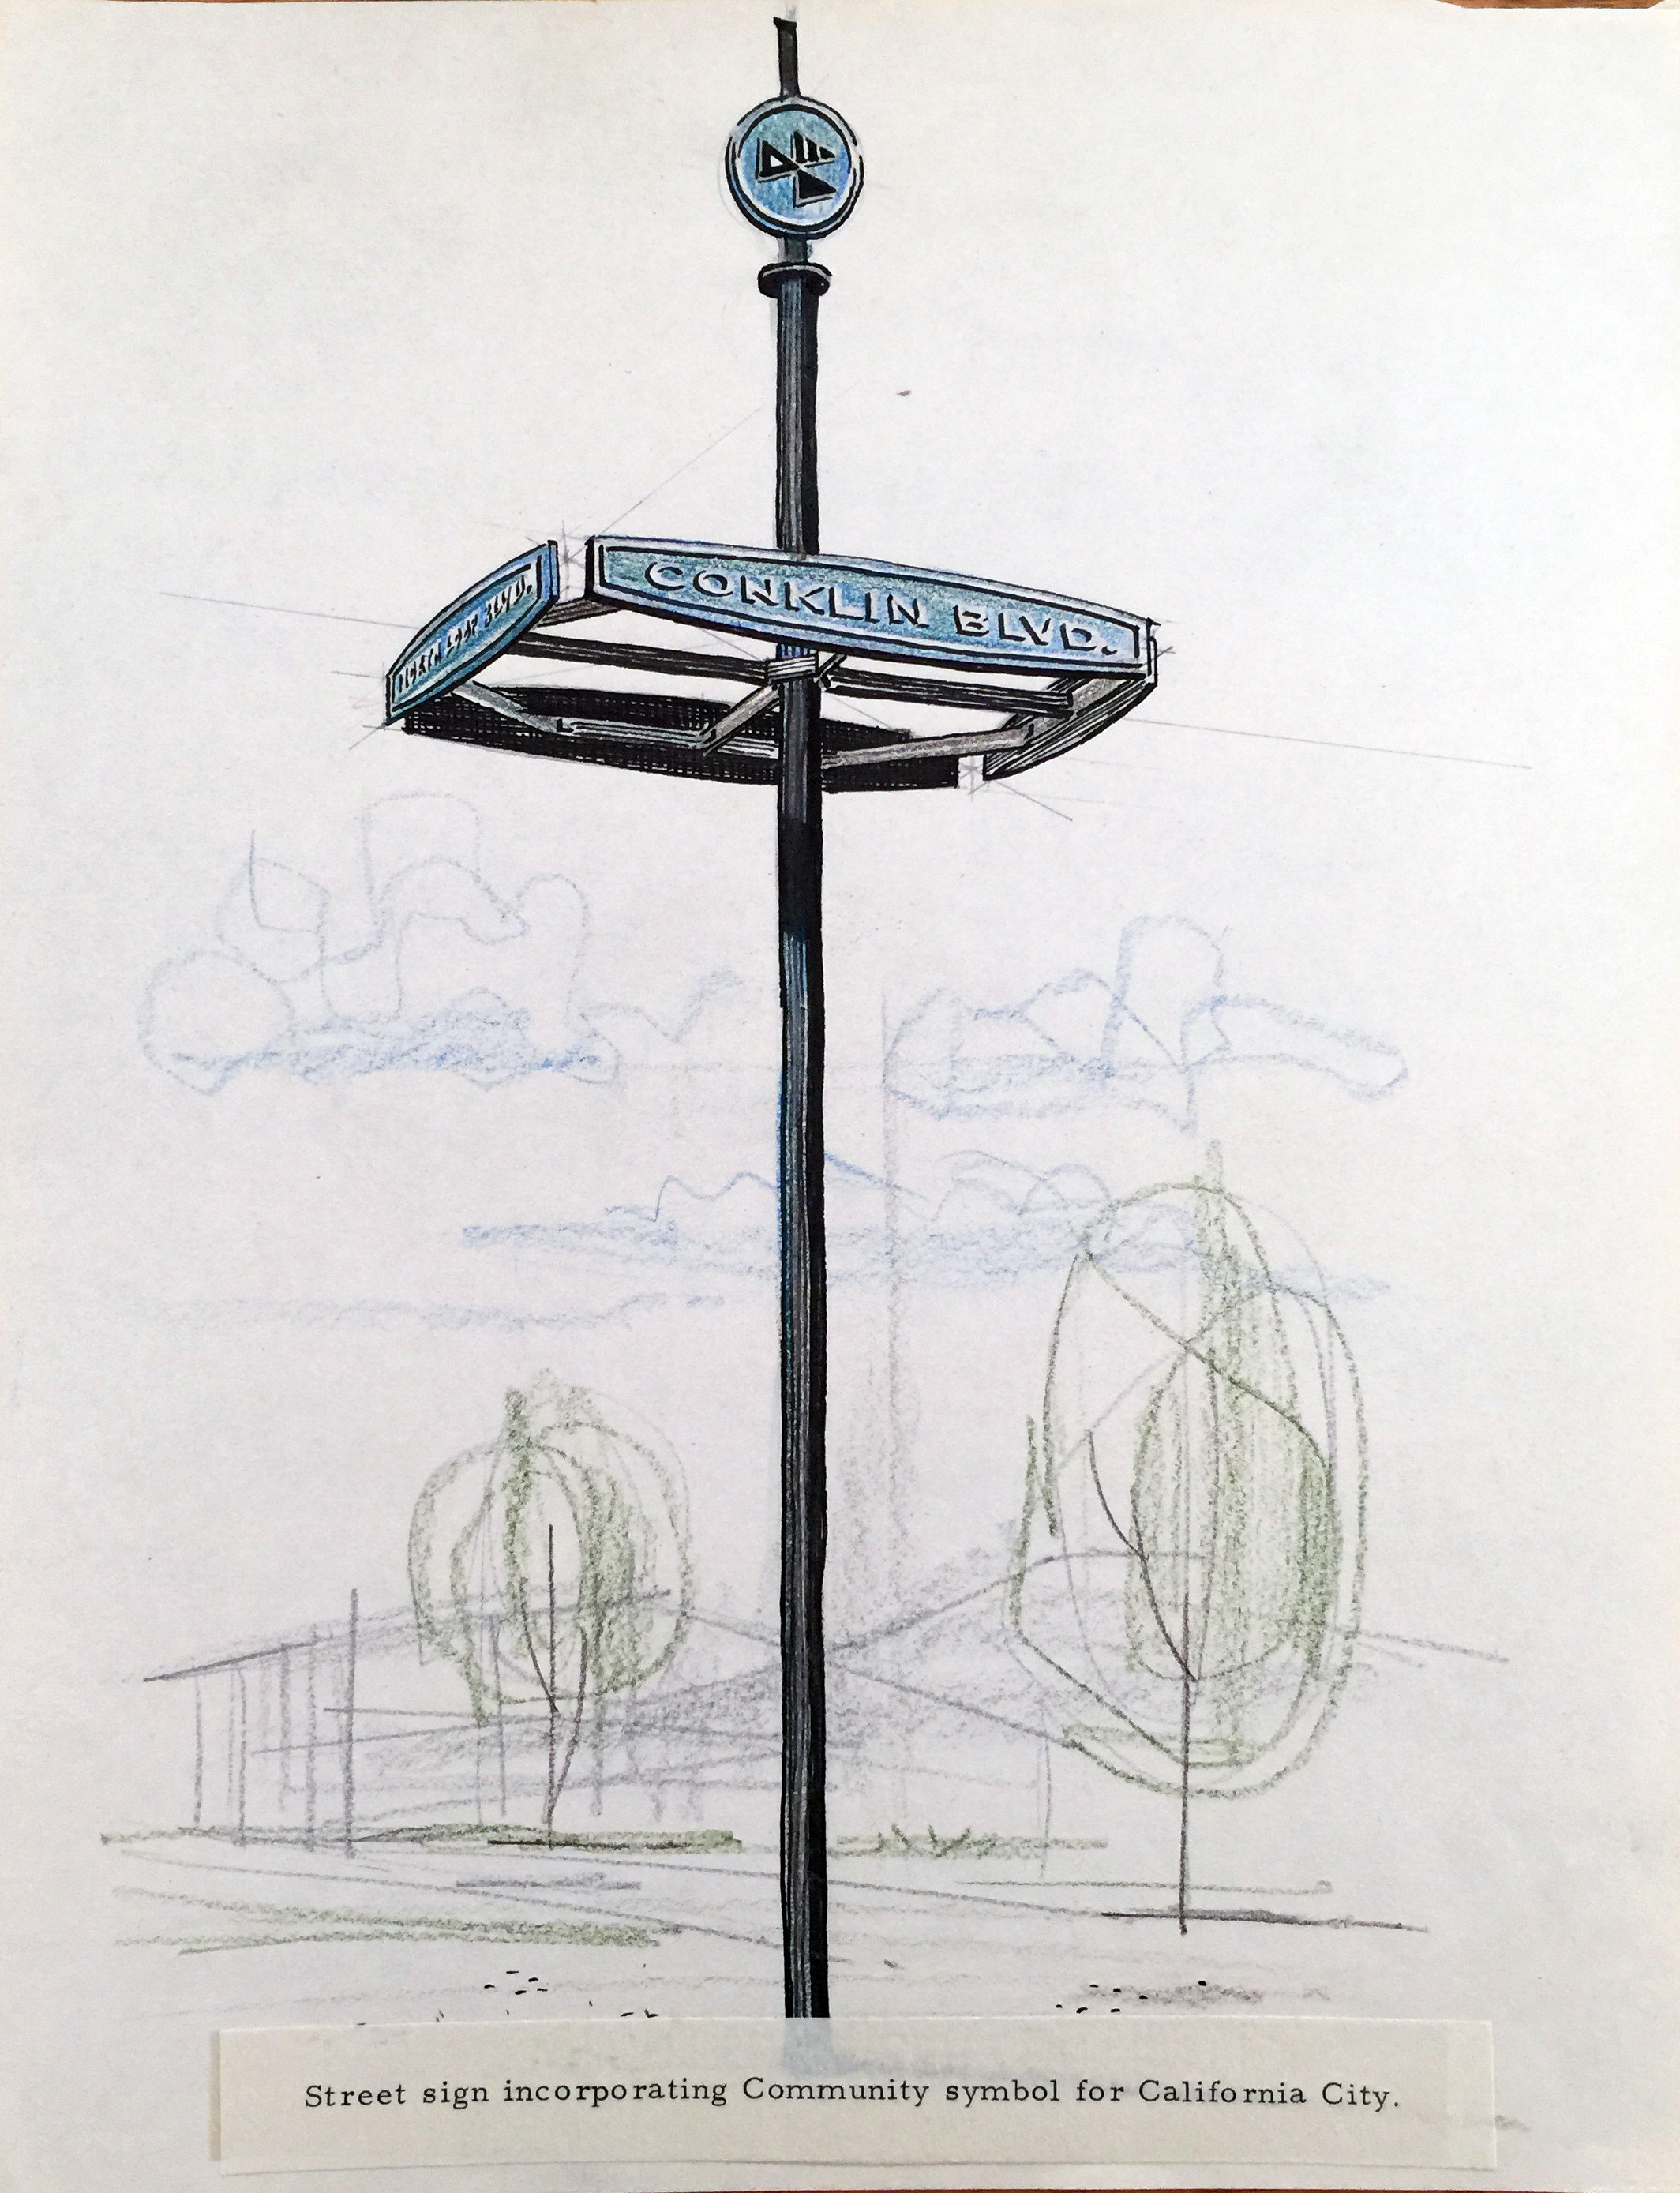 Smith and Williams, Architects and Engineers. Street Sign, California City. 196?. Architecture and Design Collection, University Art Museum, UCSB.